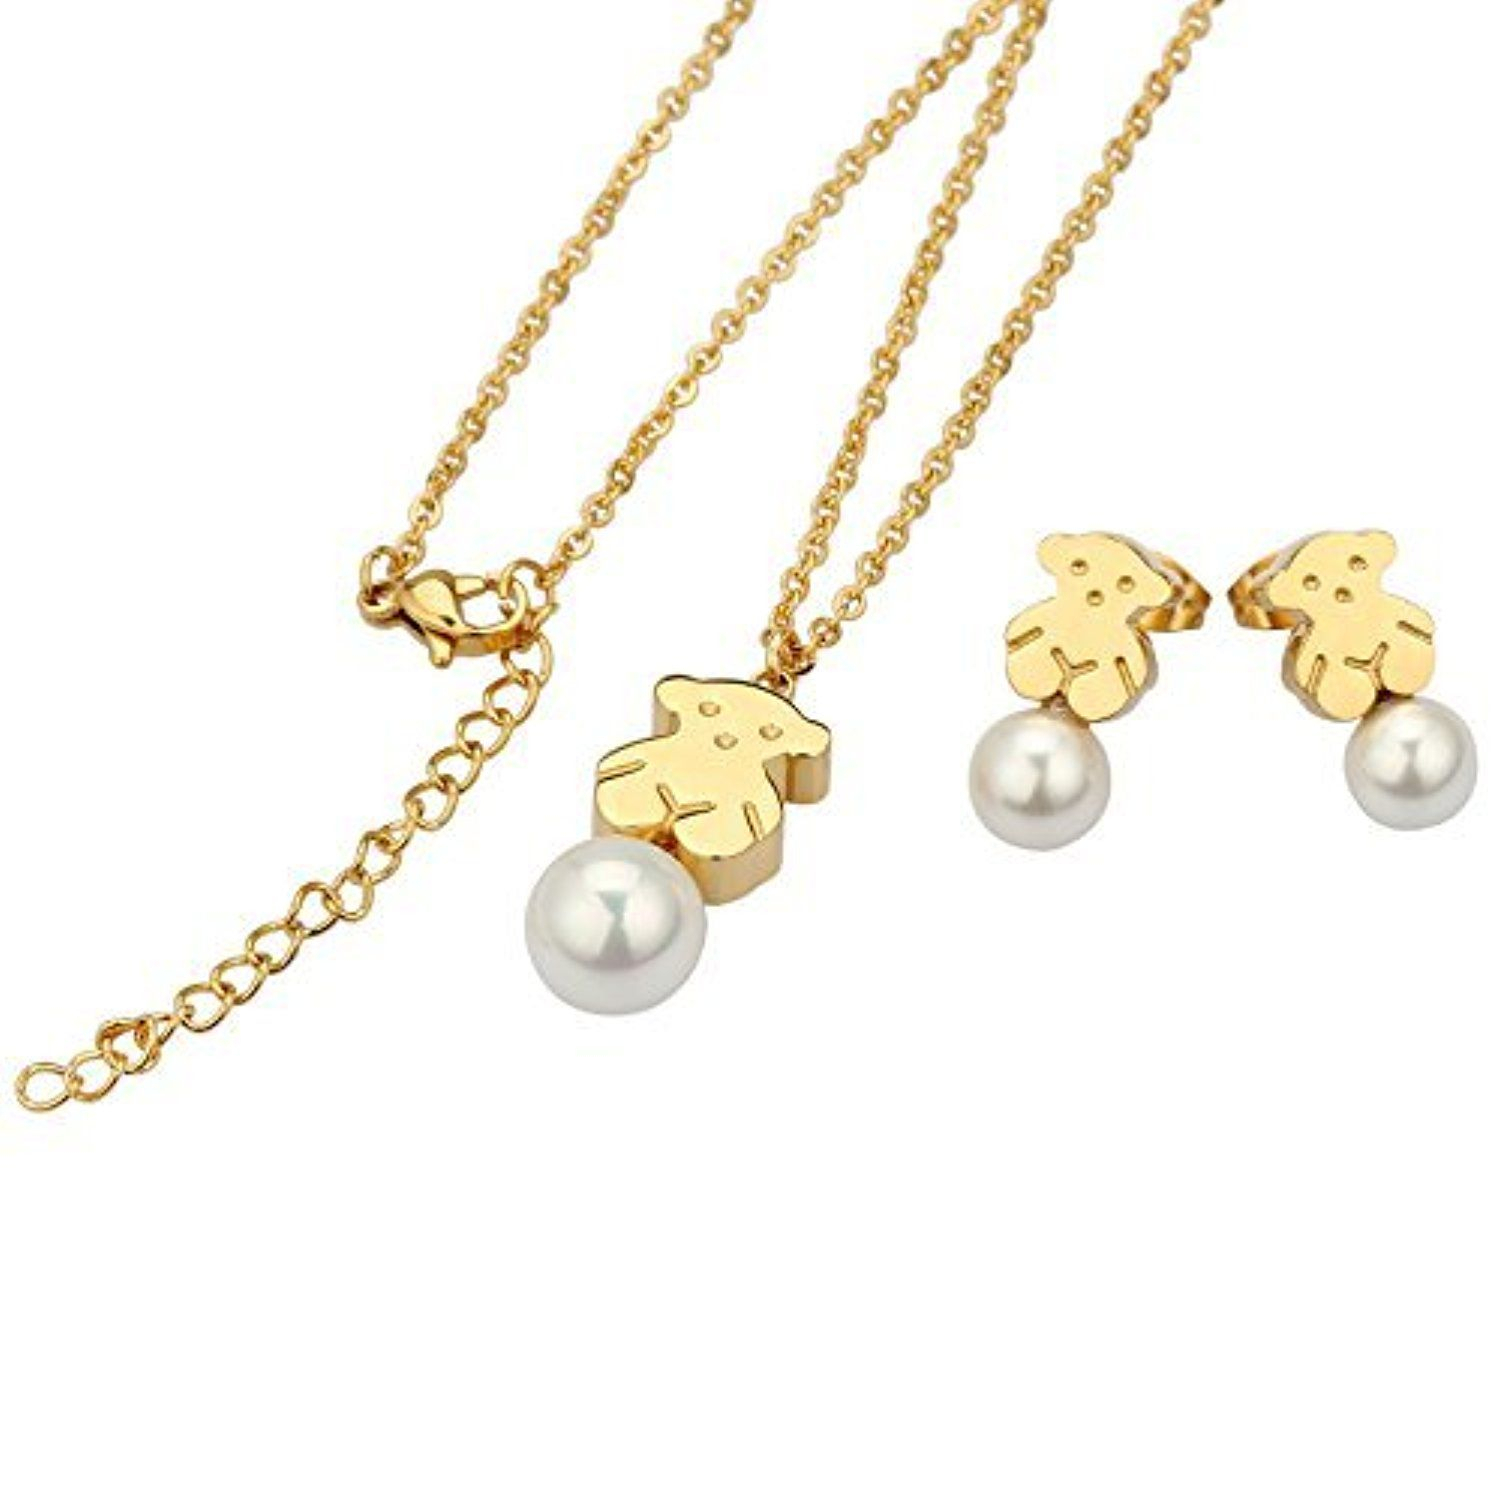 Urs 18K Gold Plated Stainless Steel Women's Teddy Bear Necklace In Current Theodore Bear Pendant Necklaces (Gallery 24 of 25)